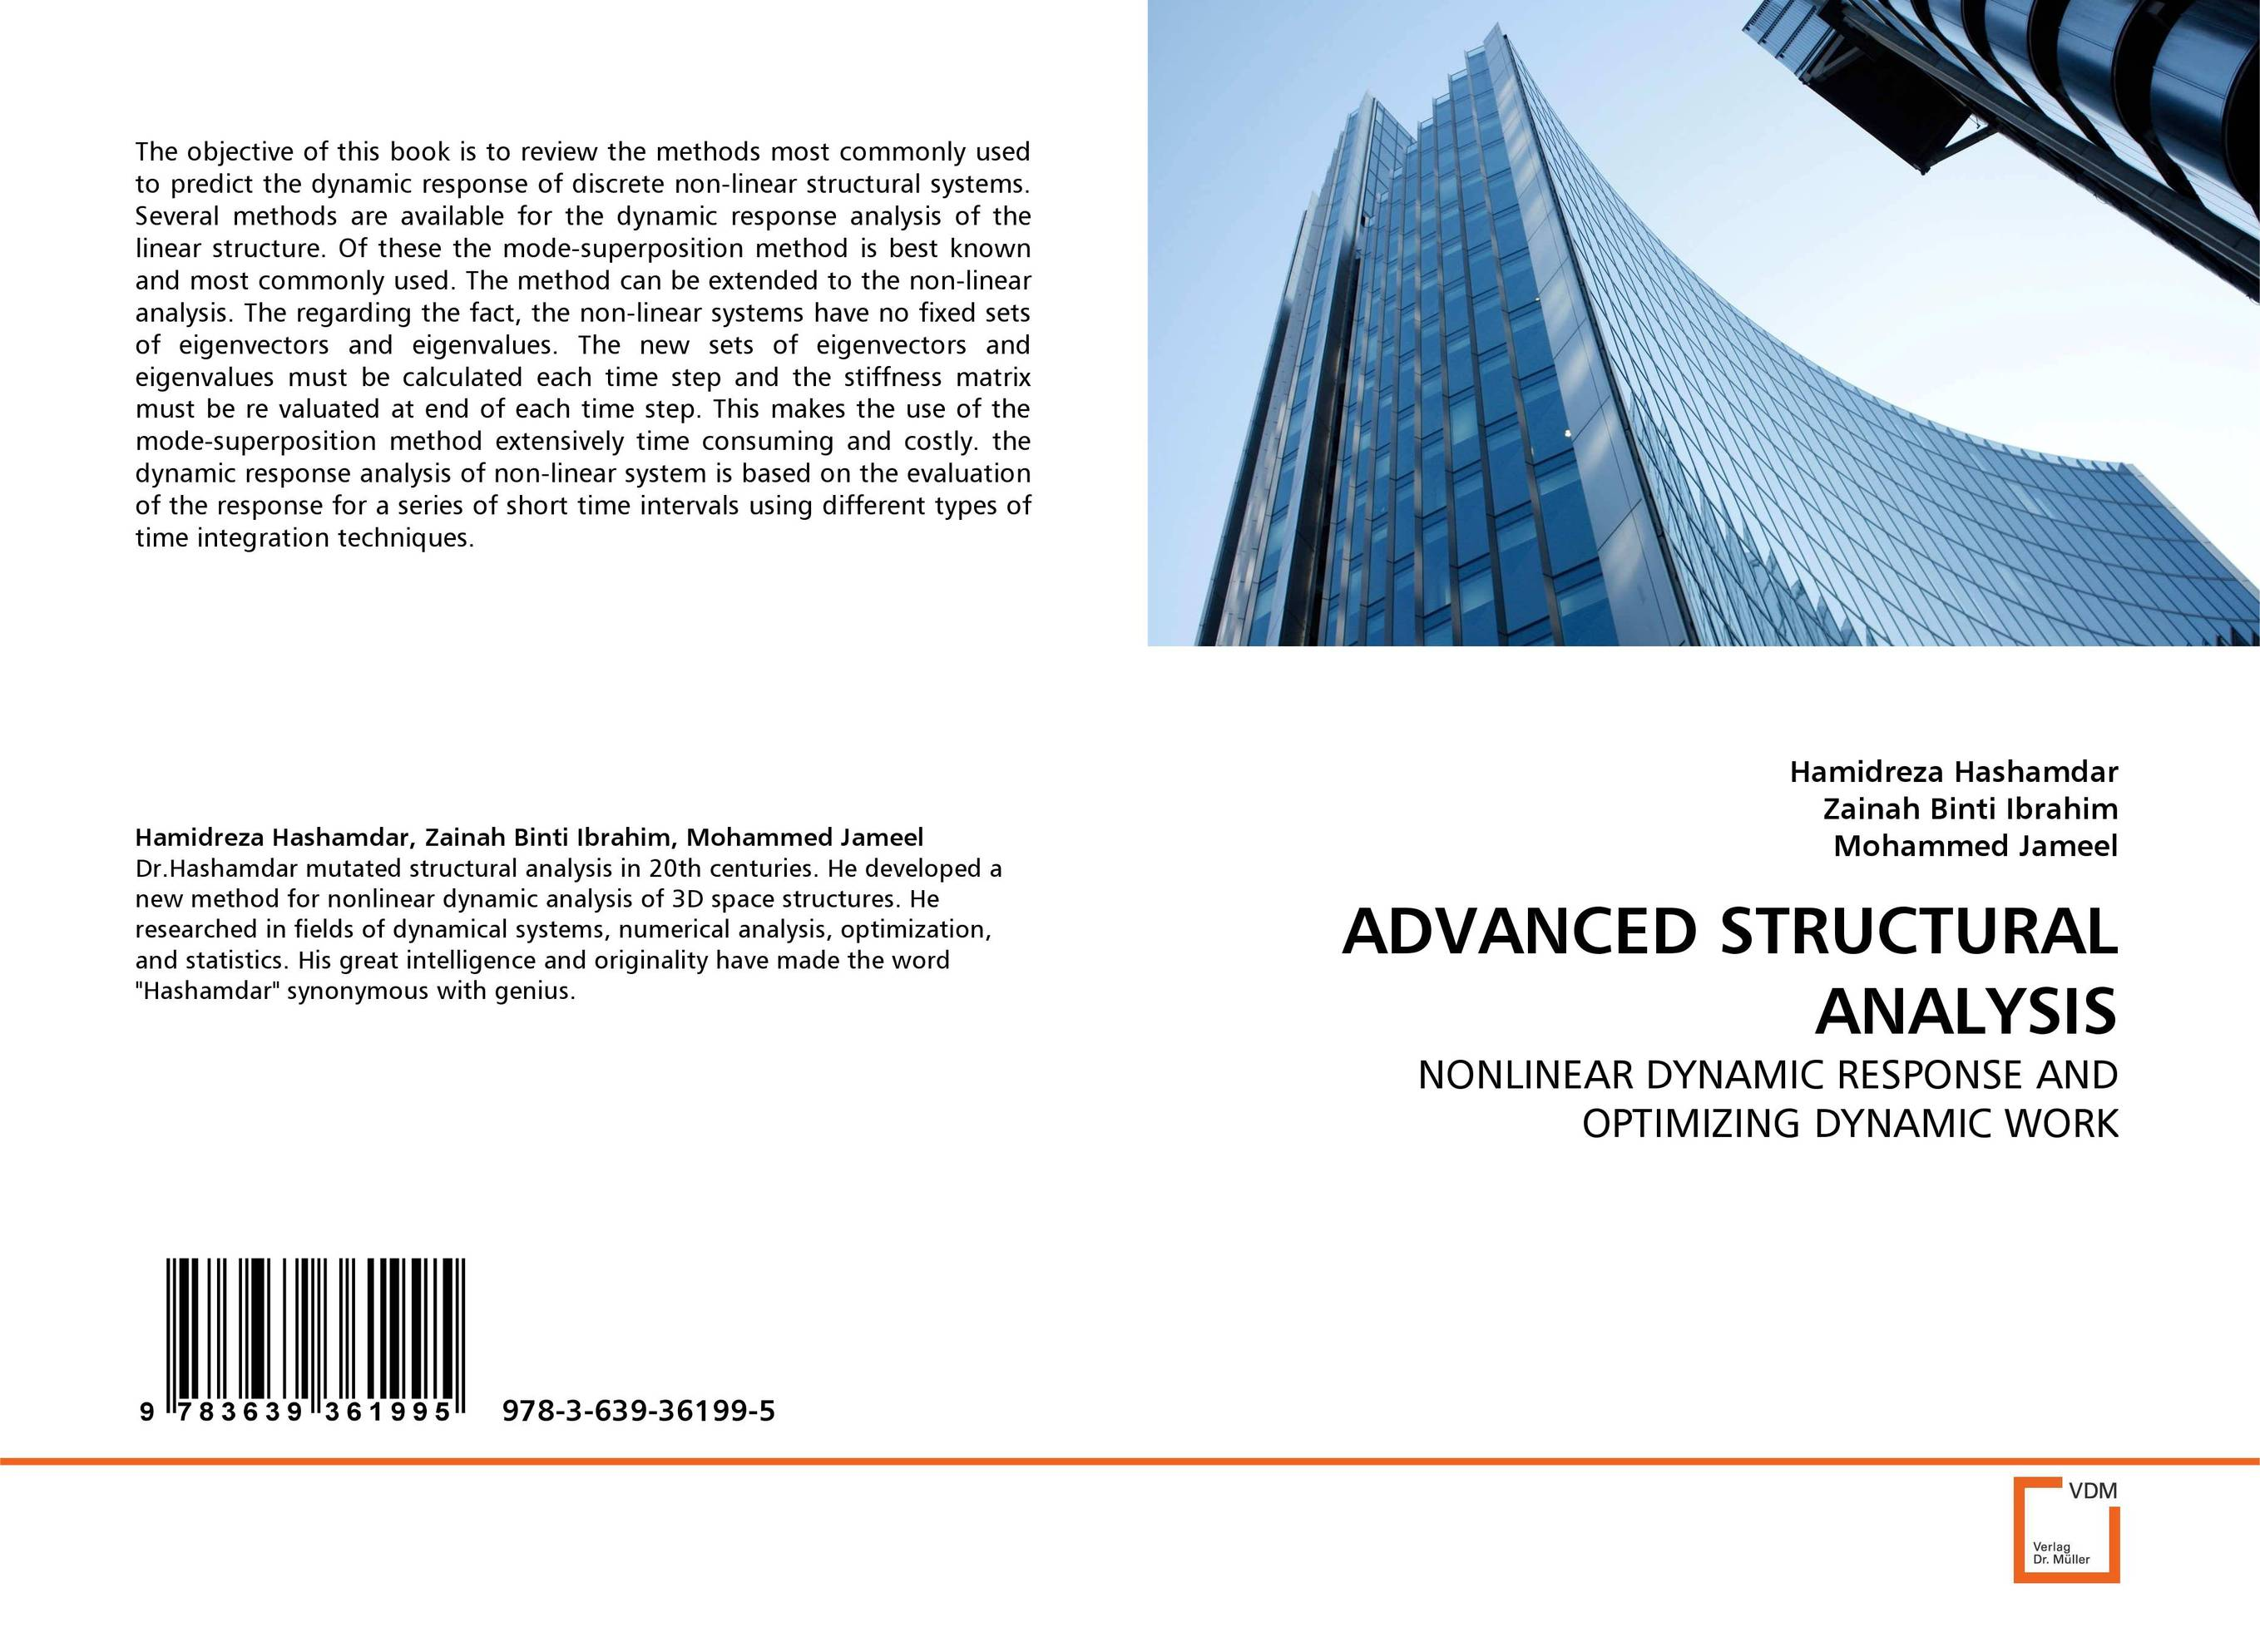 ADVANCED STRUCTURAL ANALYSIS complete dynamic analysis of stewart platform based on workspace